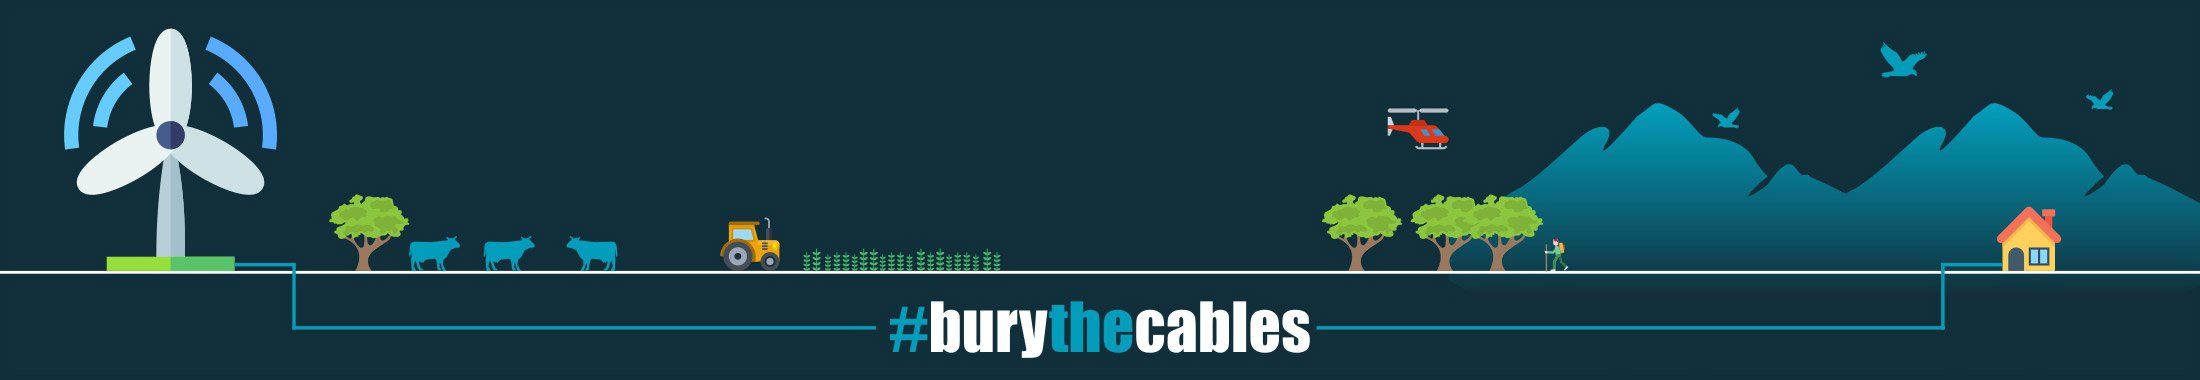 Darley Power Fight Bury The Cables Banner